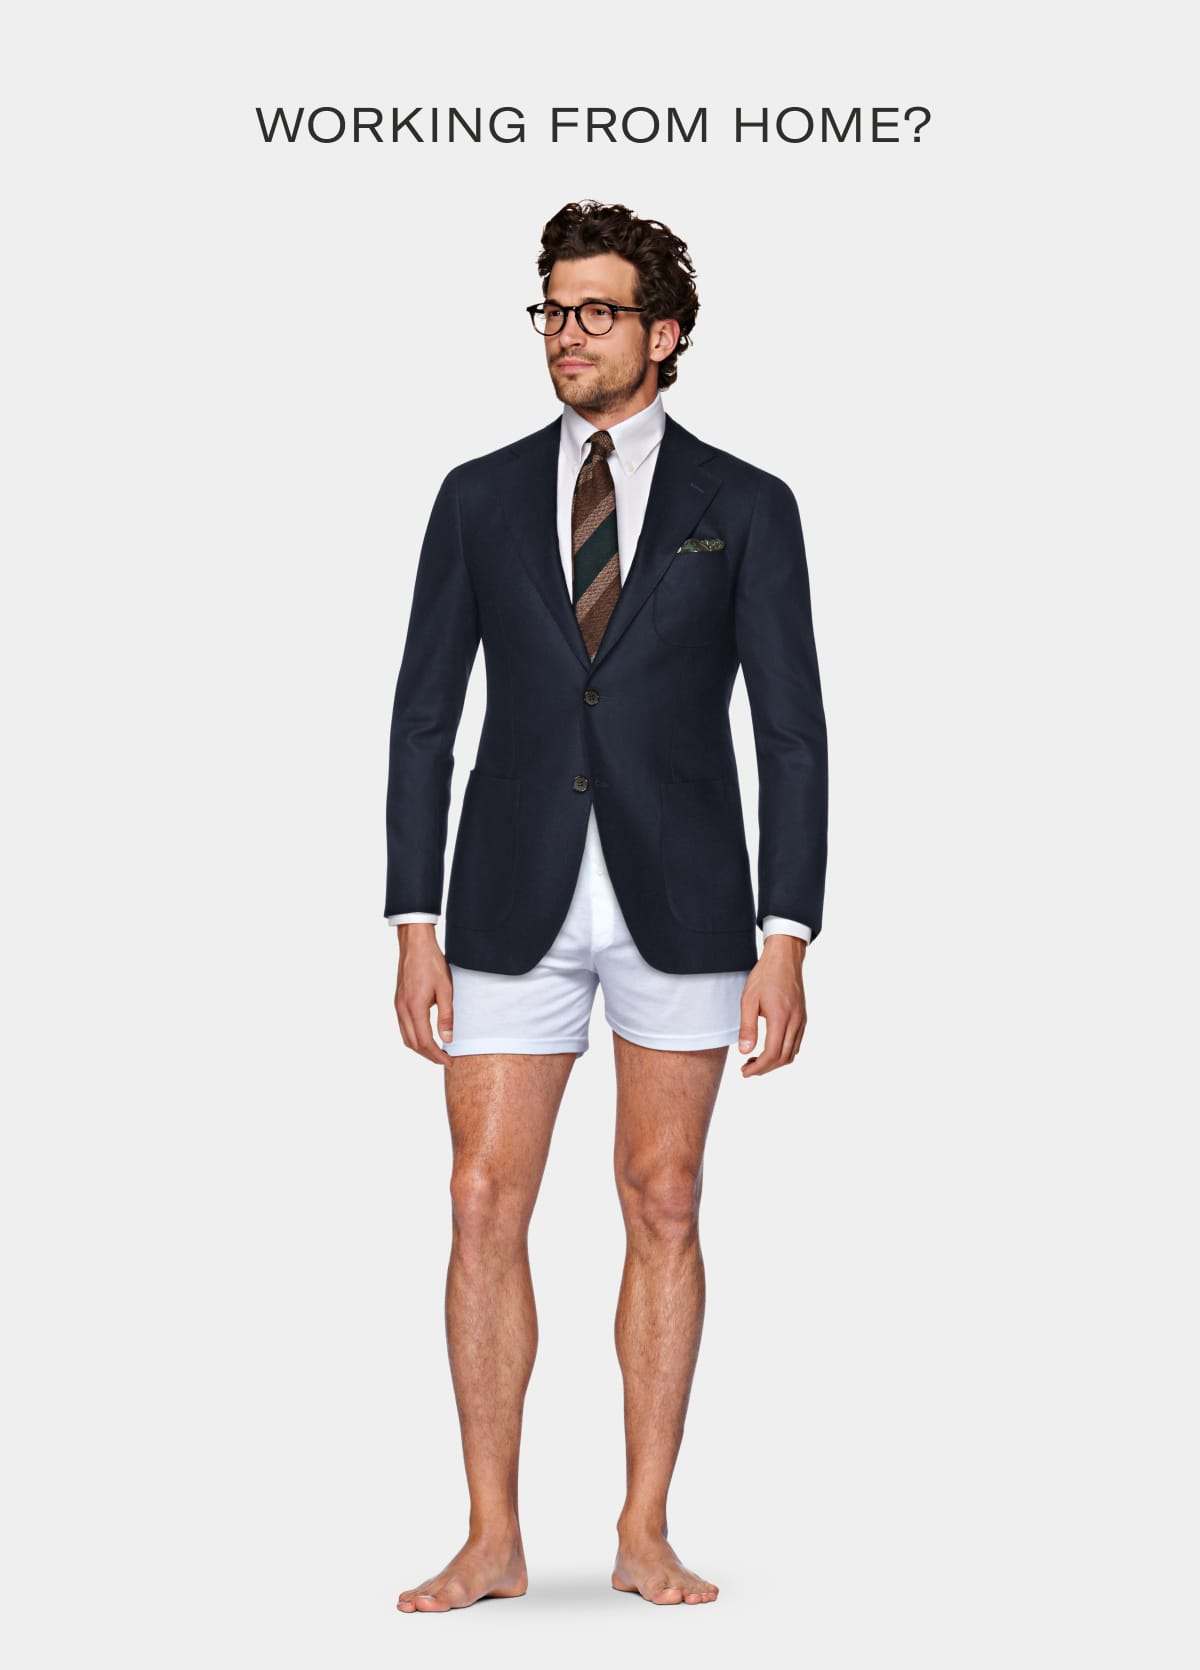 https://a.suitsupplycdn.com/image/upload/w_600,q_auto,f_auto,fl_progressive,dpr_2.0/v1584604515/email/2020/Suitsupply/030_Working_from_home/home-d-01.jpg